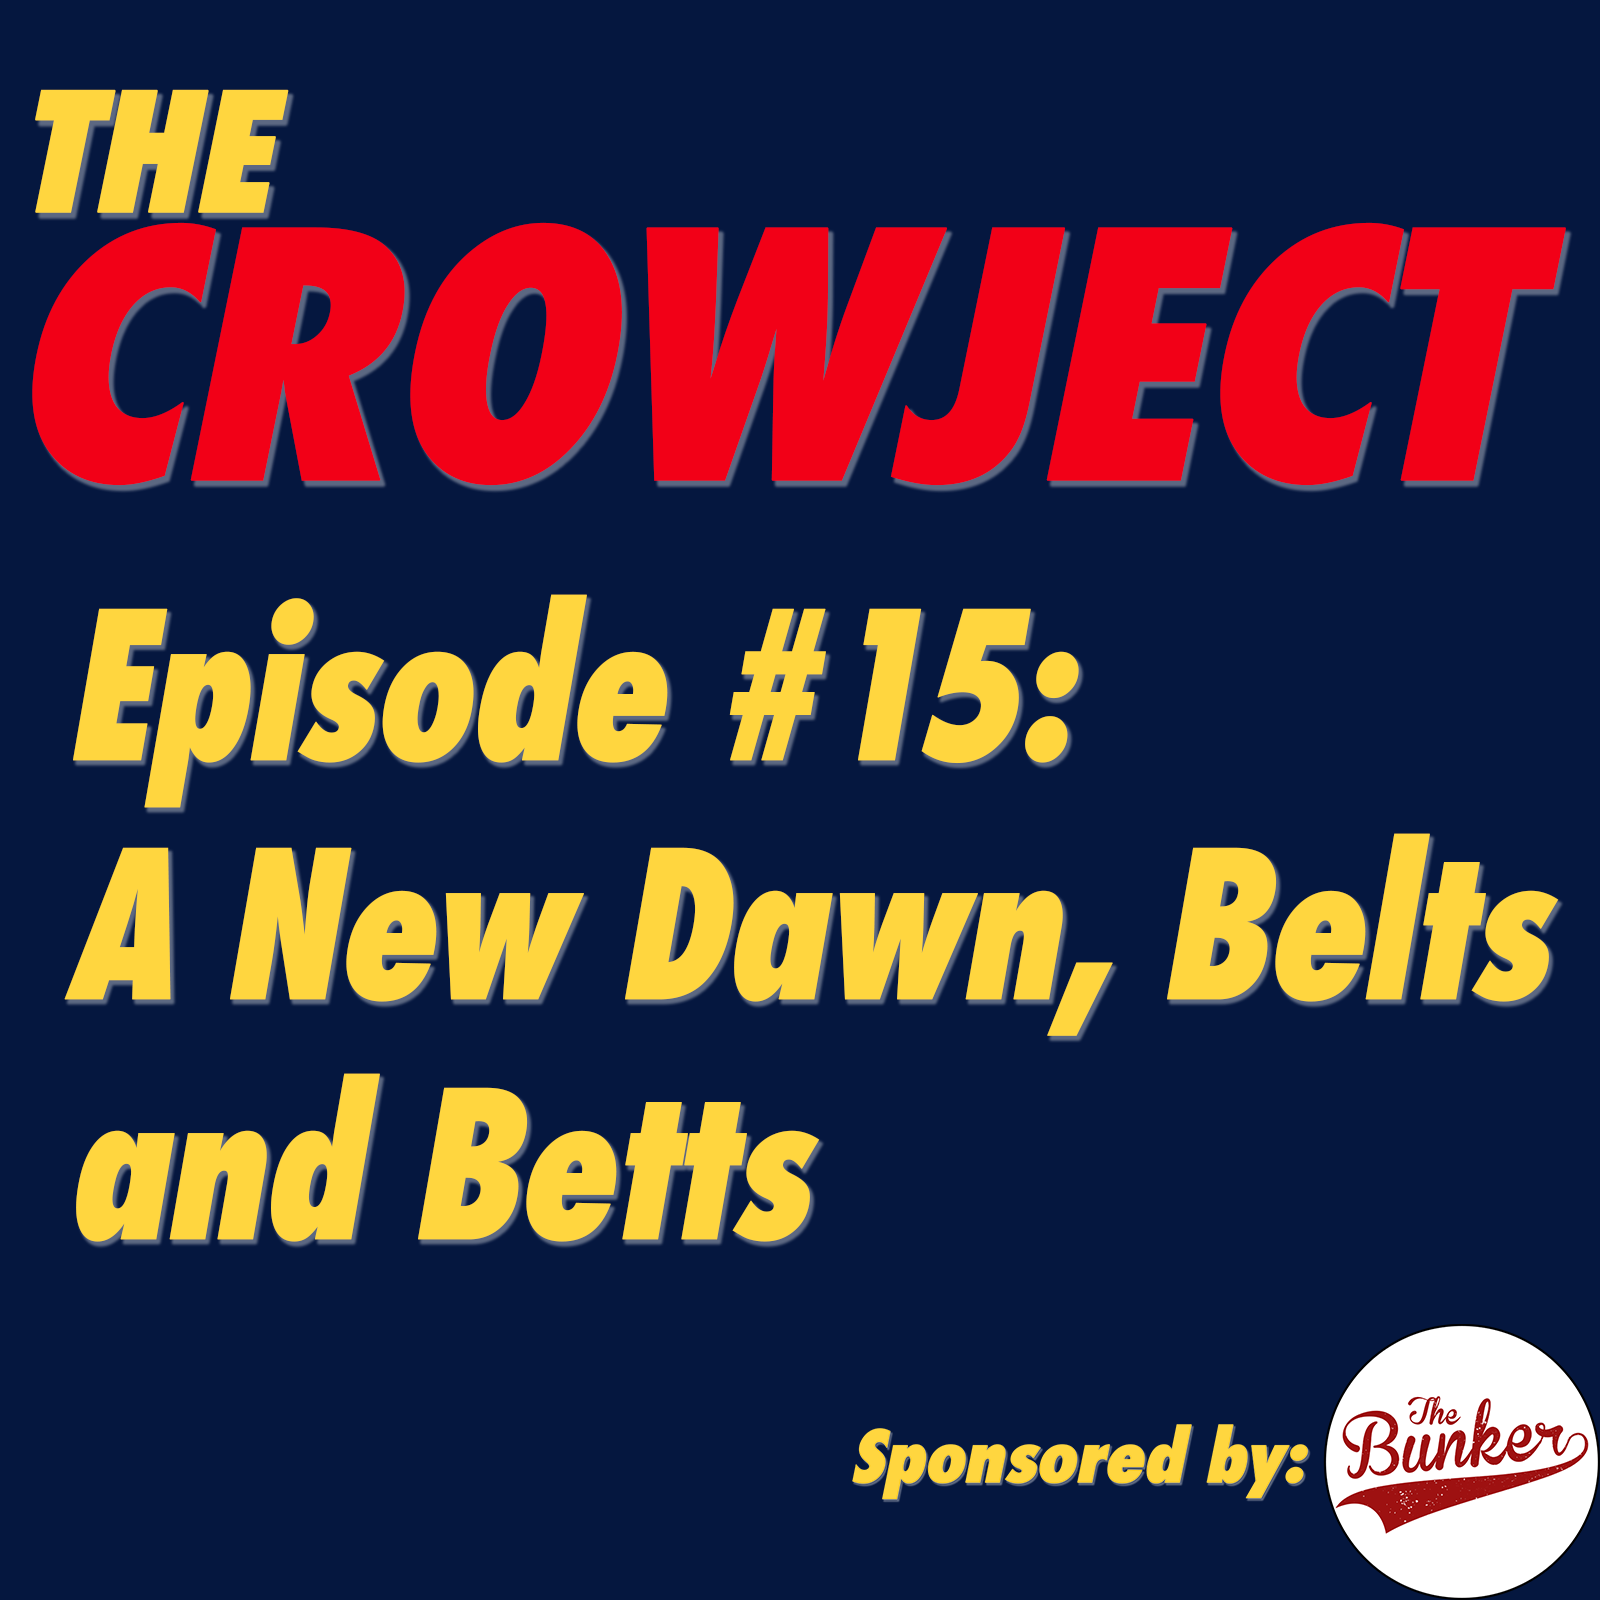 A New Dawn, Belts & Betts